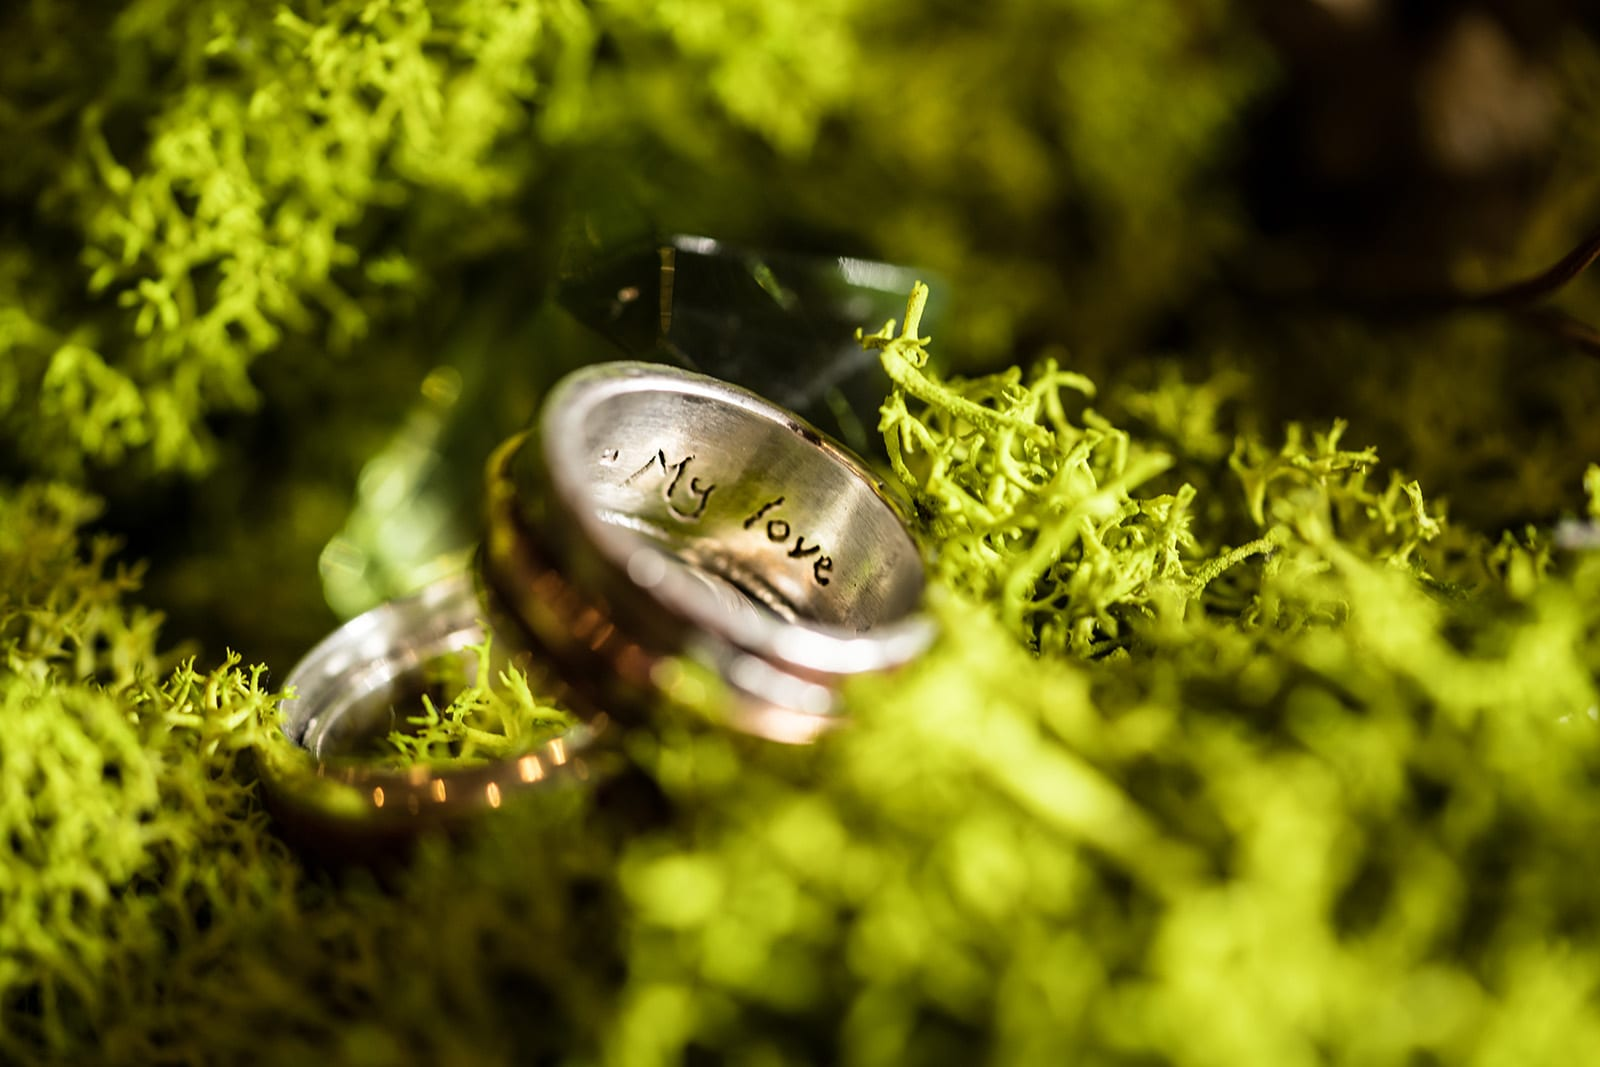 My-love-gay-wedding-grooms-moss-copper-Hawaii-Wedding-Photographer-Ring-Details-macro.jpg